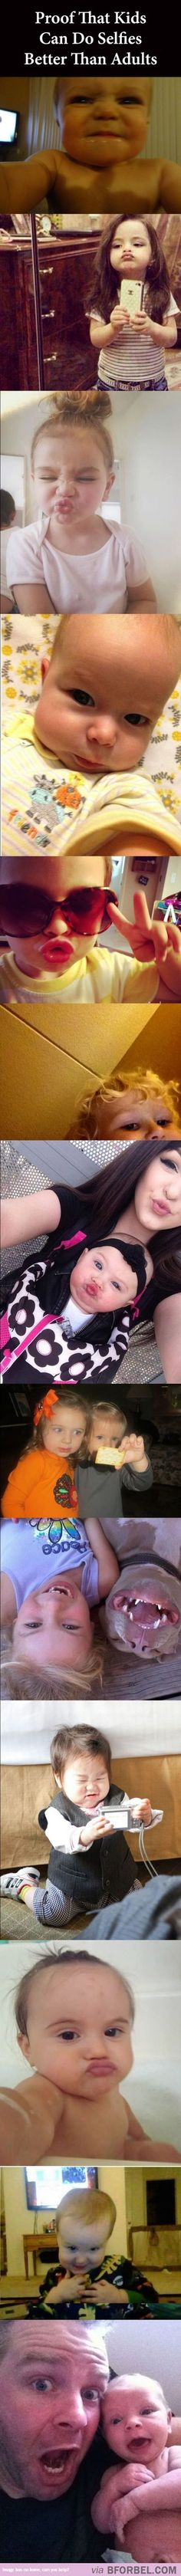 funny selfies, cute selfies, babi selfi, best selfies, baby selfies, funny stuff, awesom, ador, kid